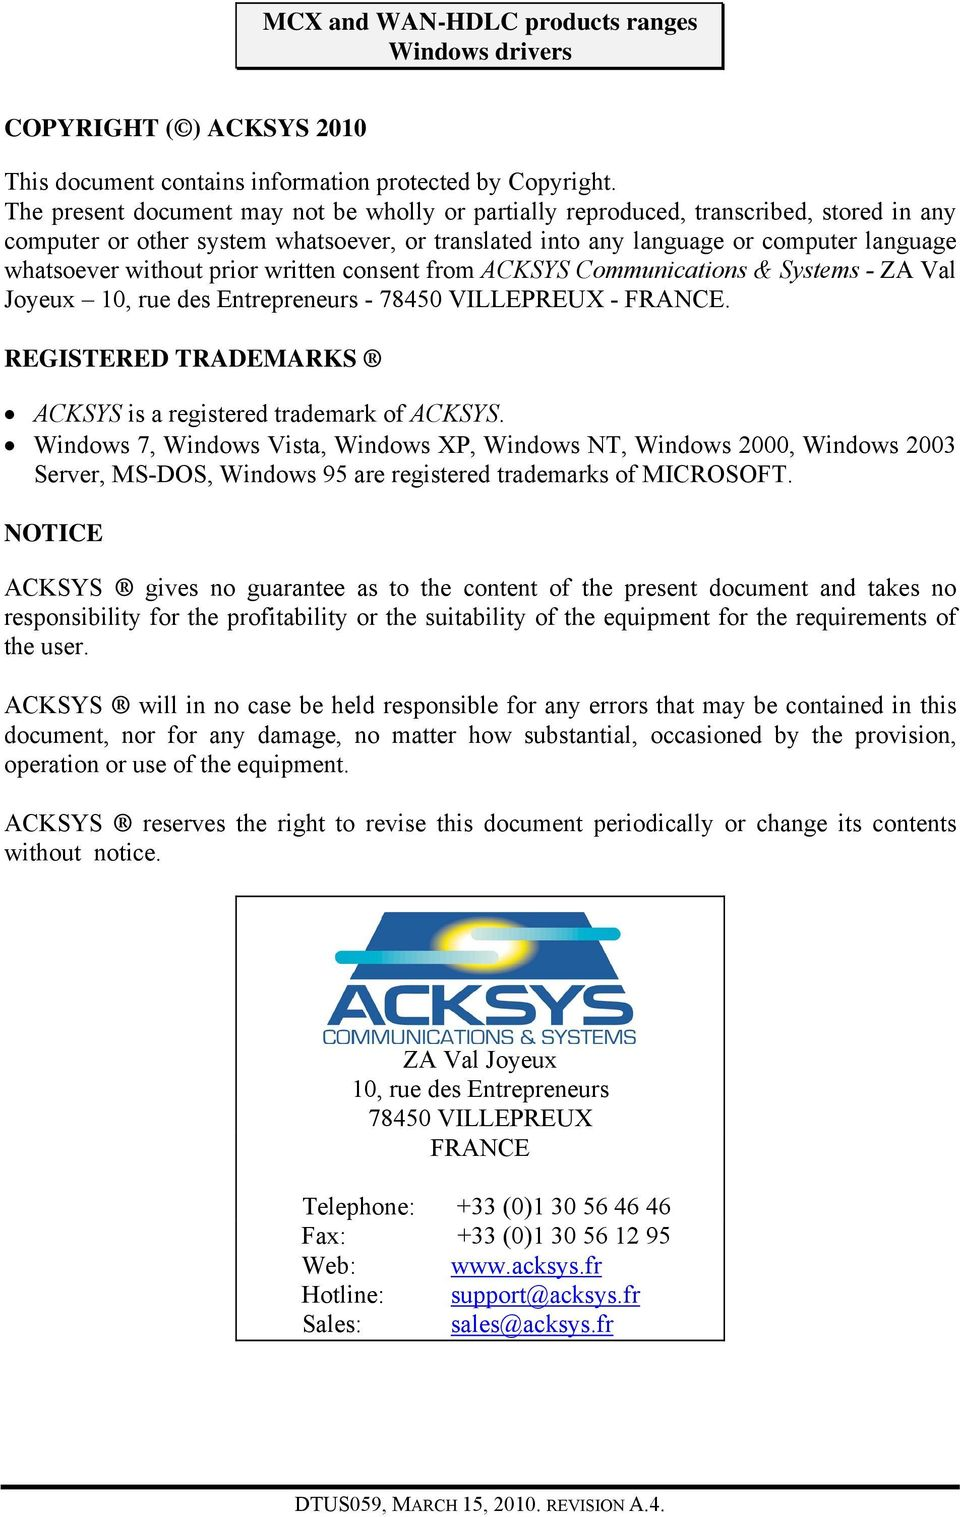 prior written consent from ACKSYS Communications & Systems - ZA Val Joyeux 10, rue des Entrepreneurs - 78450 VILLEPREUX - FRANCE. REGISTERED TRADEMARKS ACKSYS is a registered trademark of ACKSYS.